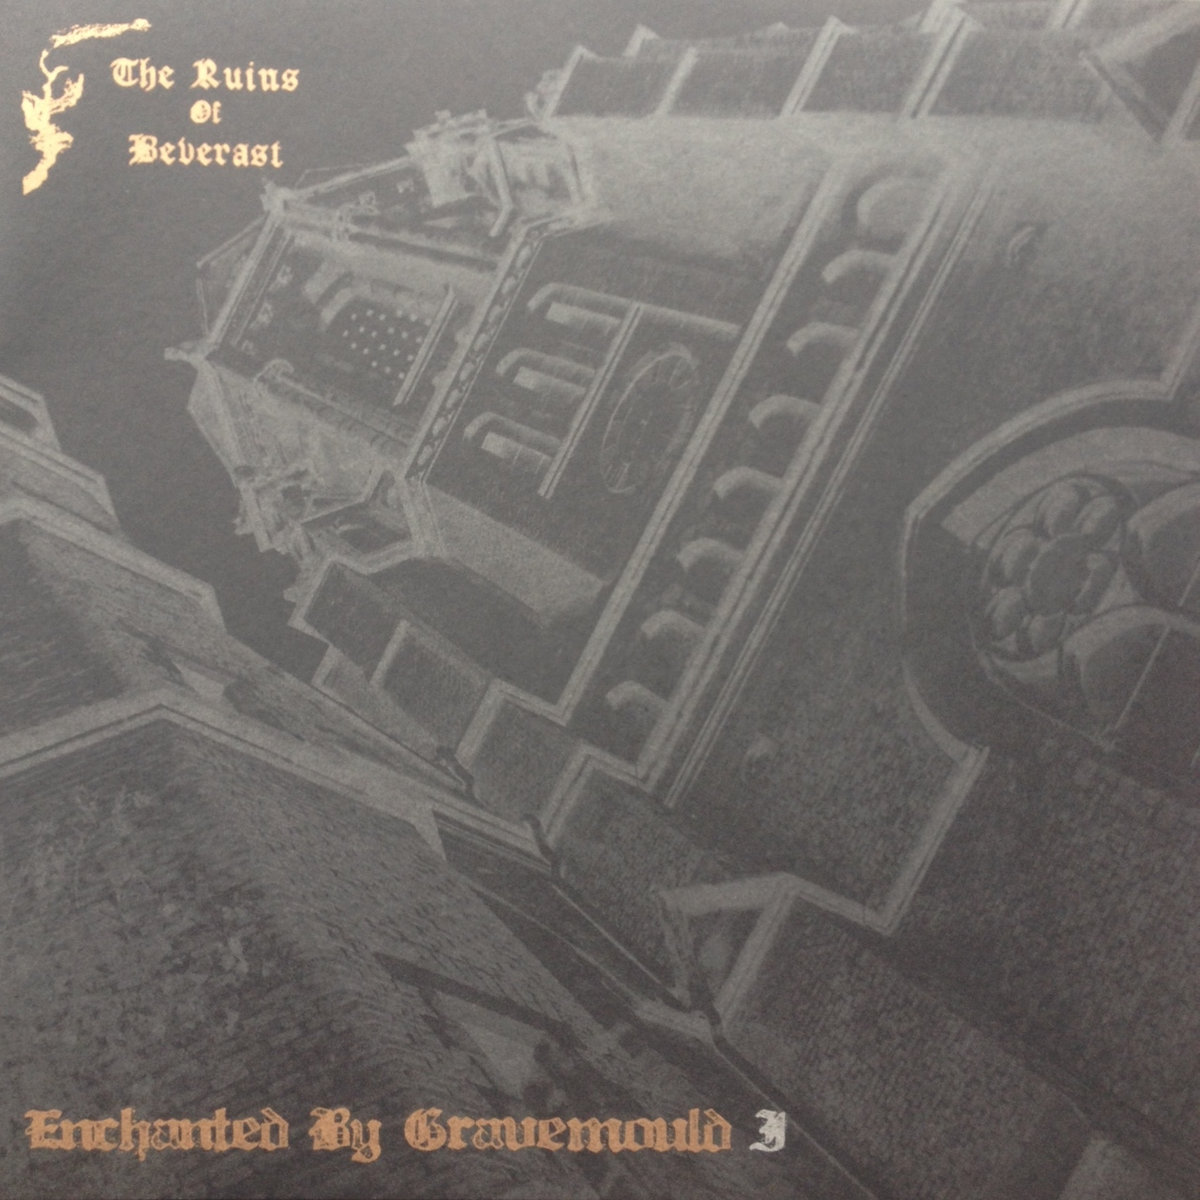 The Ruins Of Beverast Enchanted By Gravemould Lp